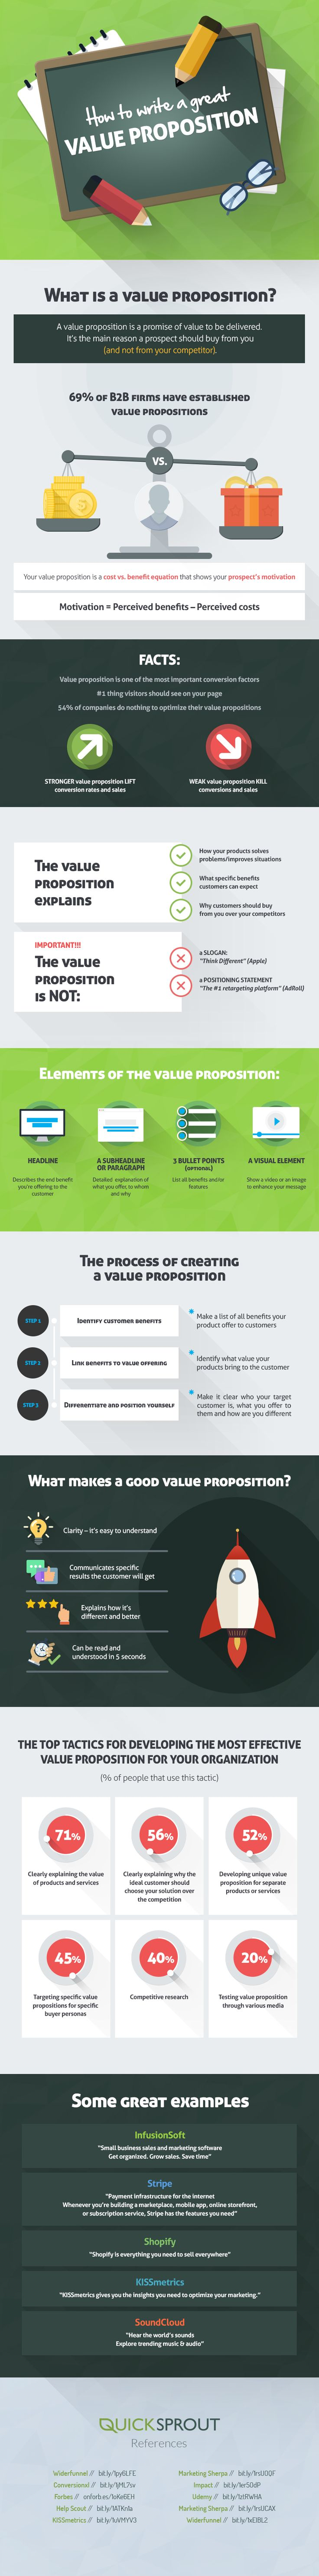 How to Write a Great Value Proposition